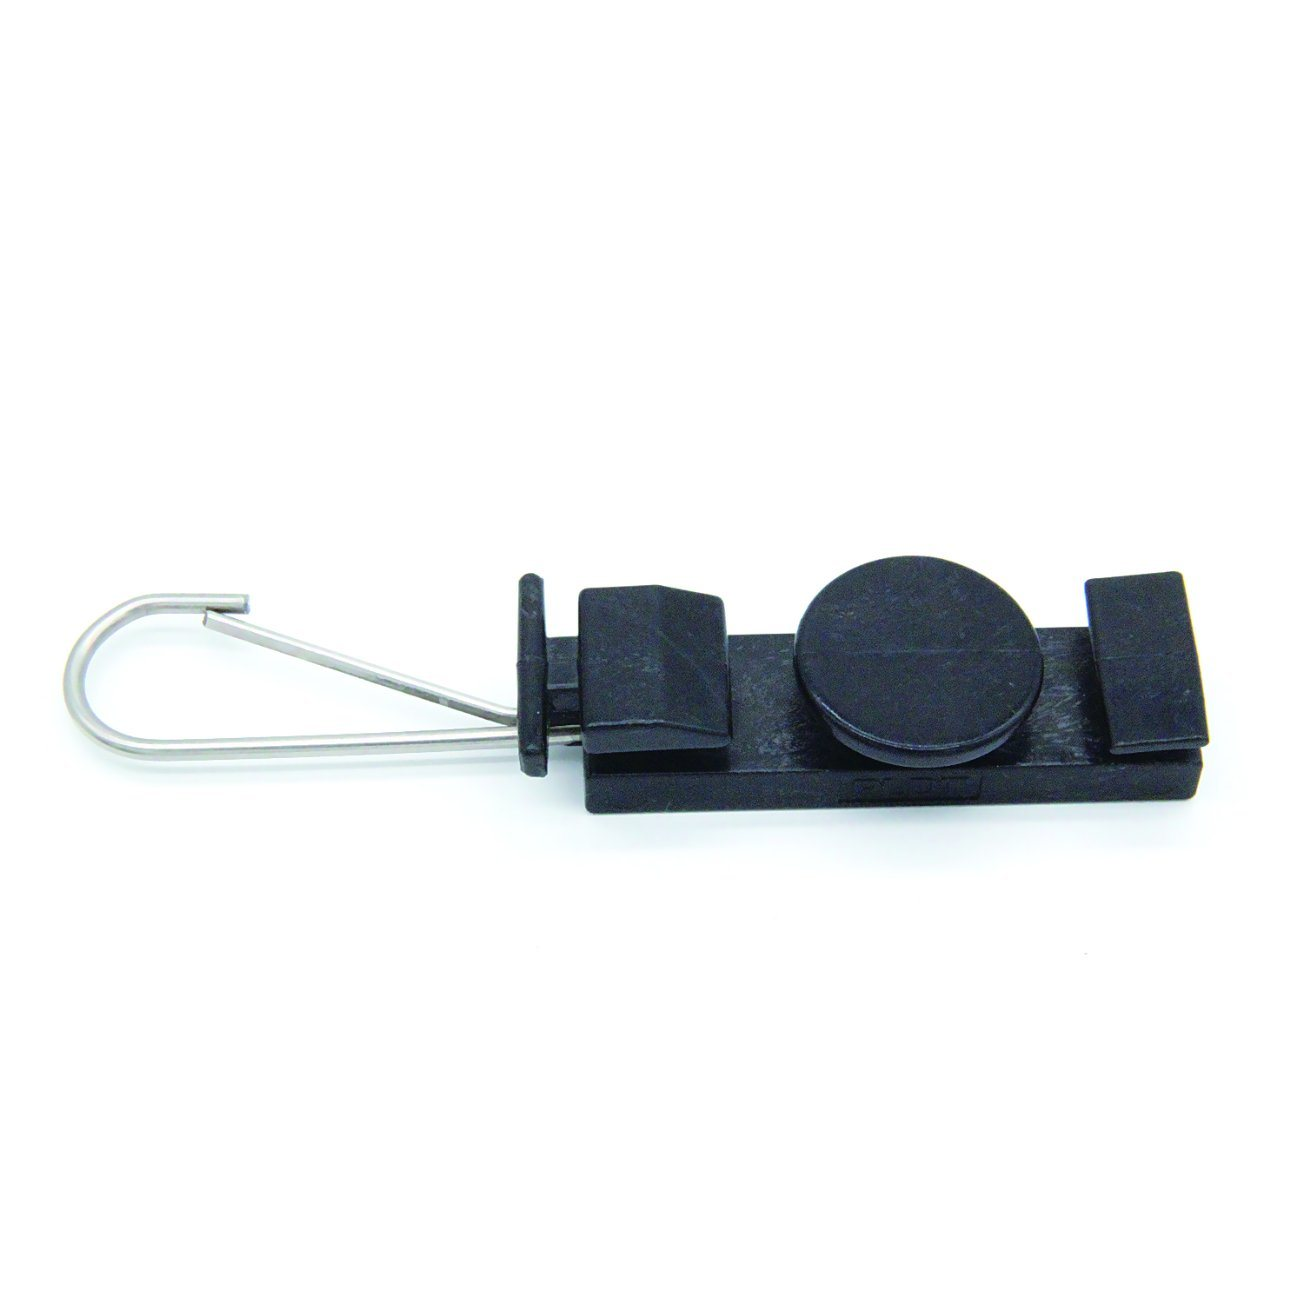 China ABS/PC Material Wire Clamp FTTH - China FTTH Fittings, FTTH ...